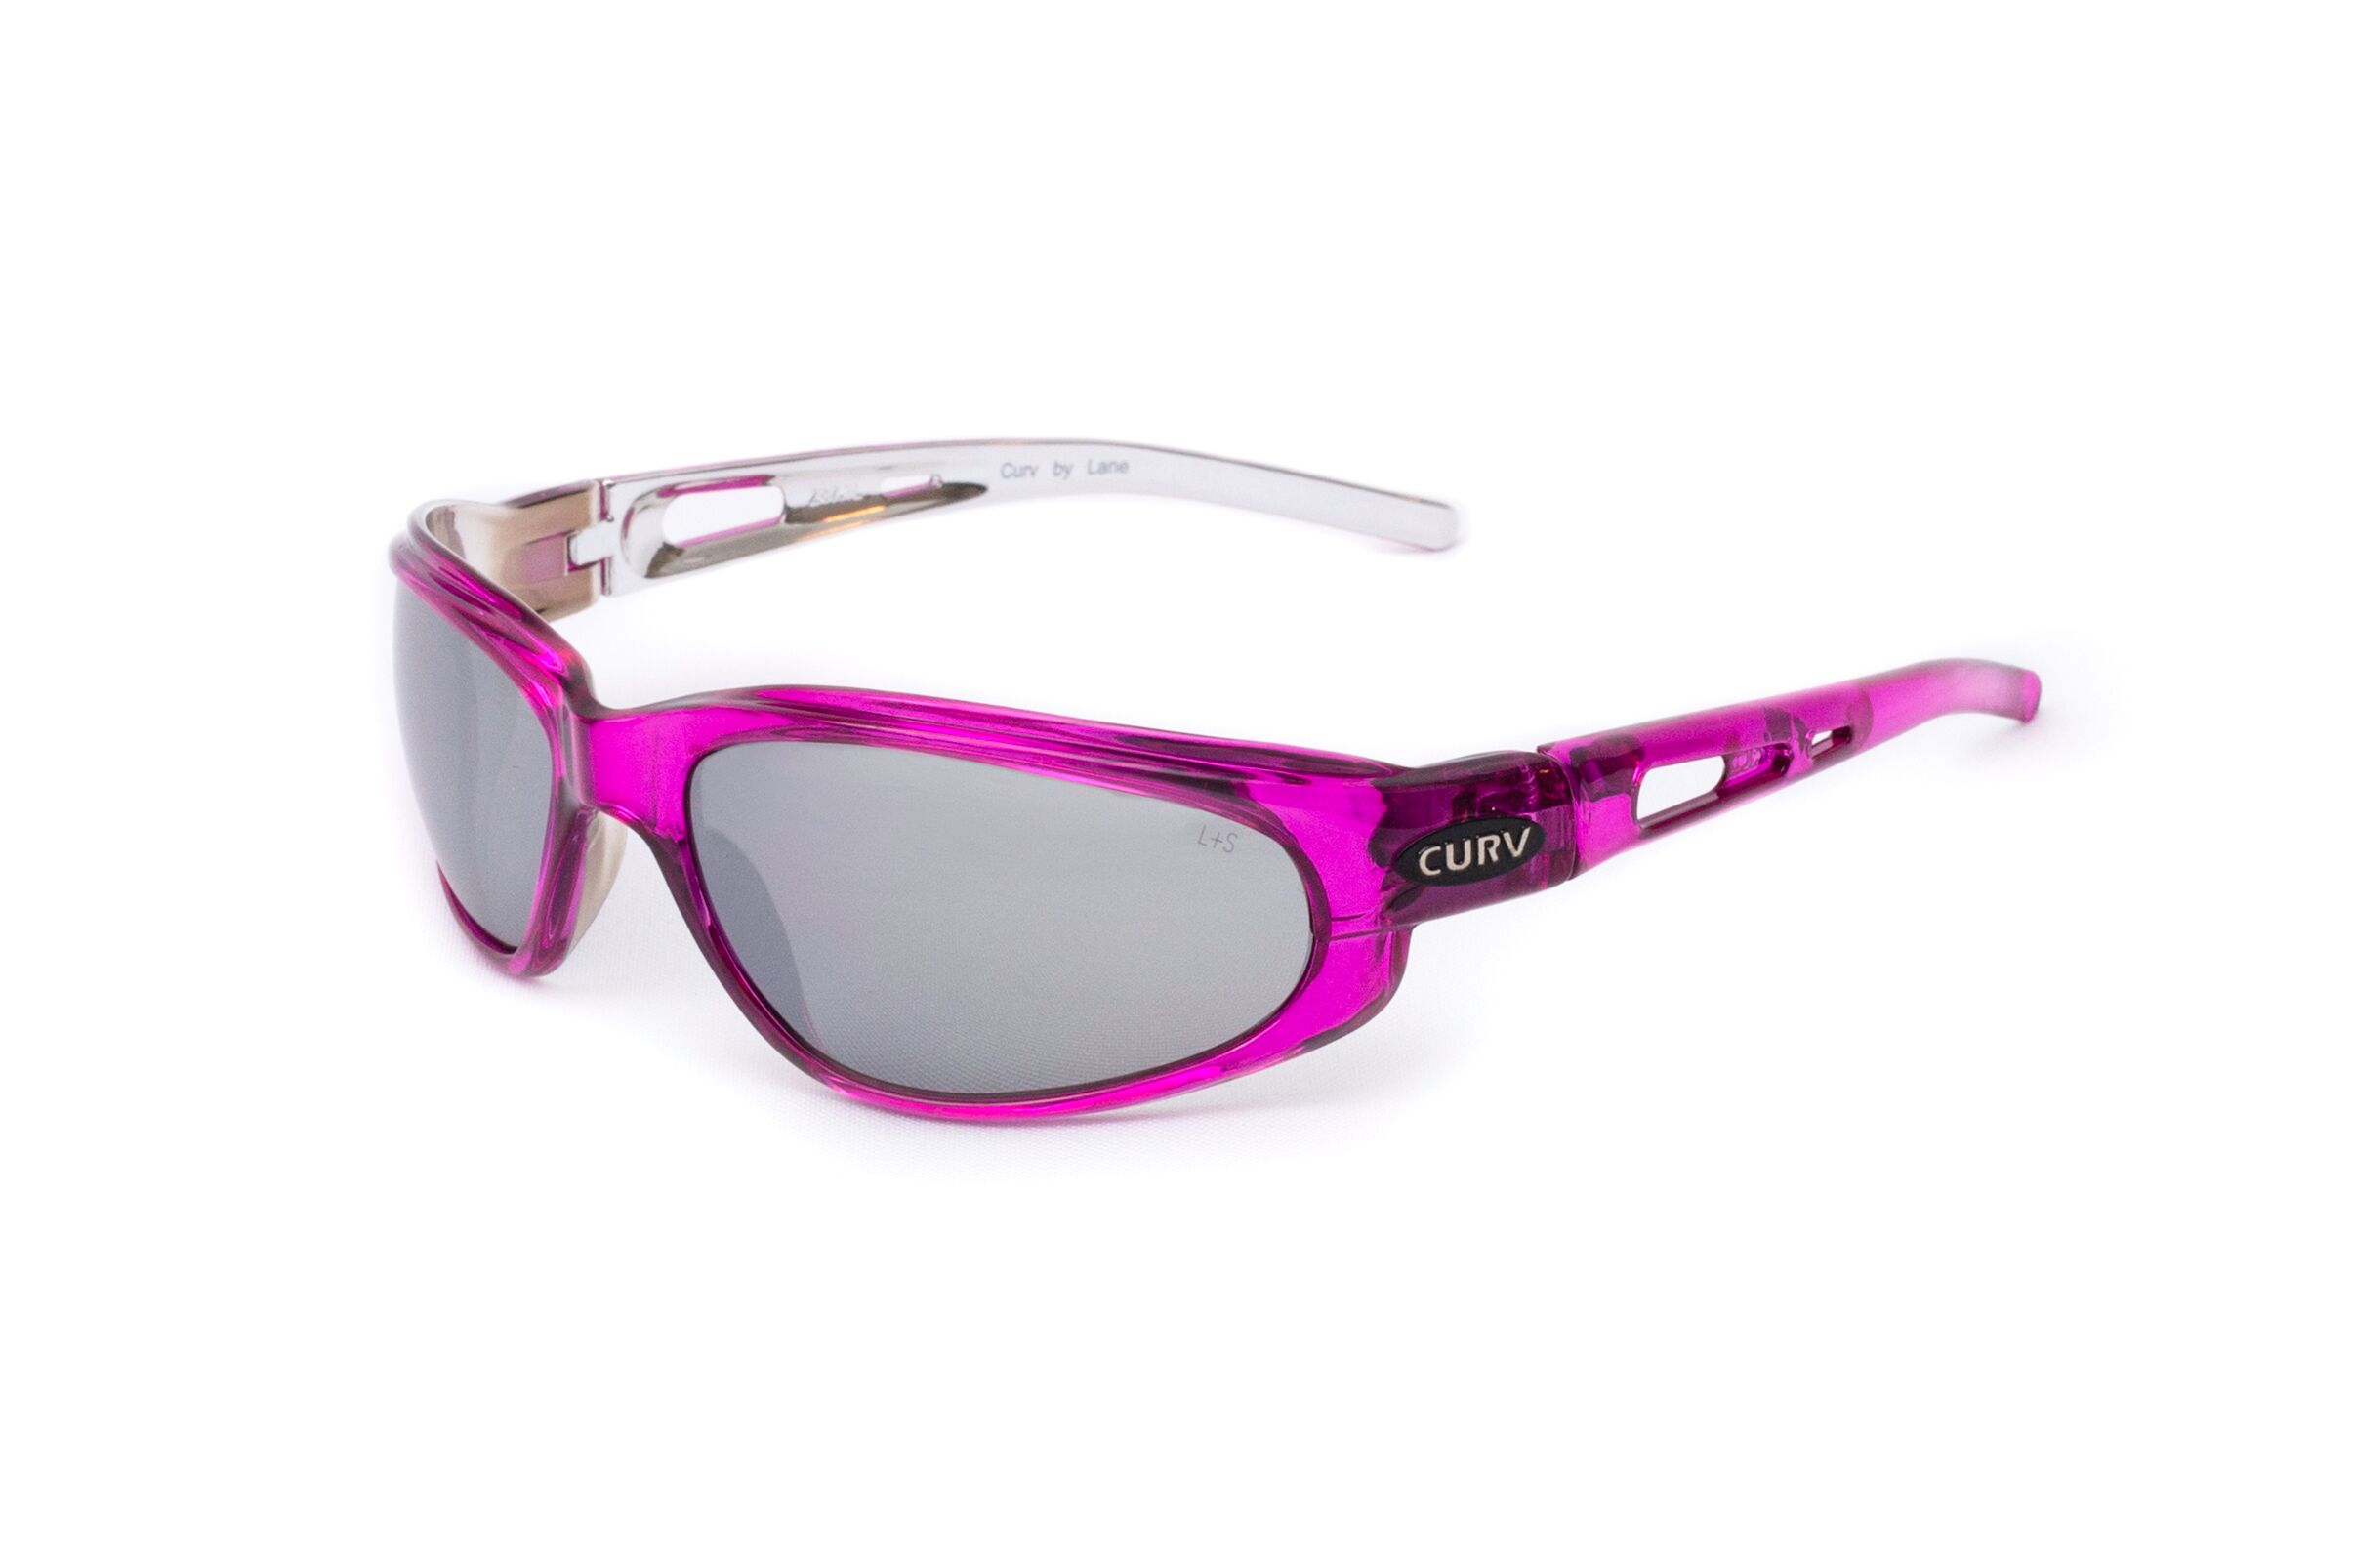 01-27 - Curv Crystal Pink Sunglasses with Flash Mirror Smoke Lenses and Crystal Pink Frames